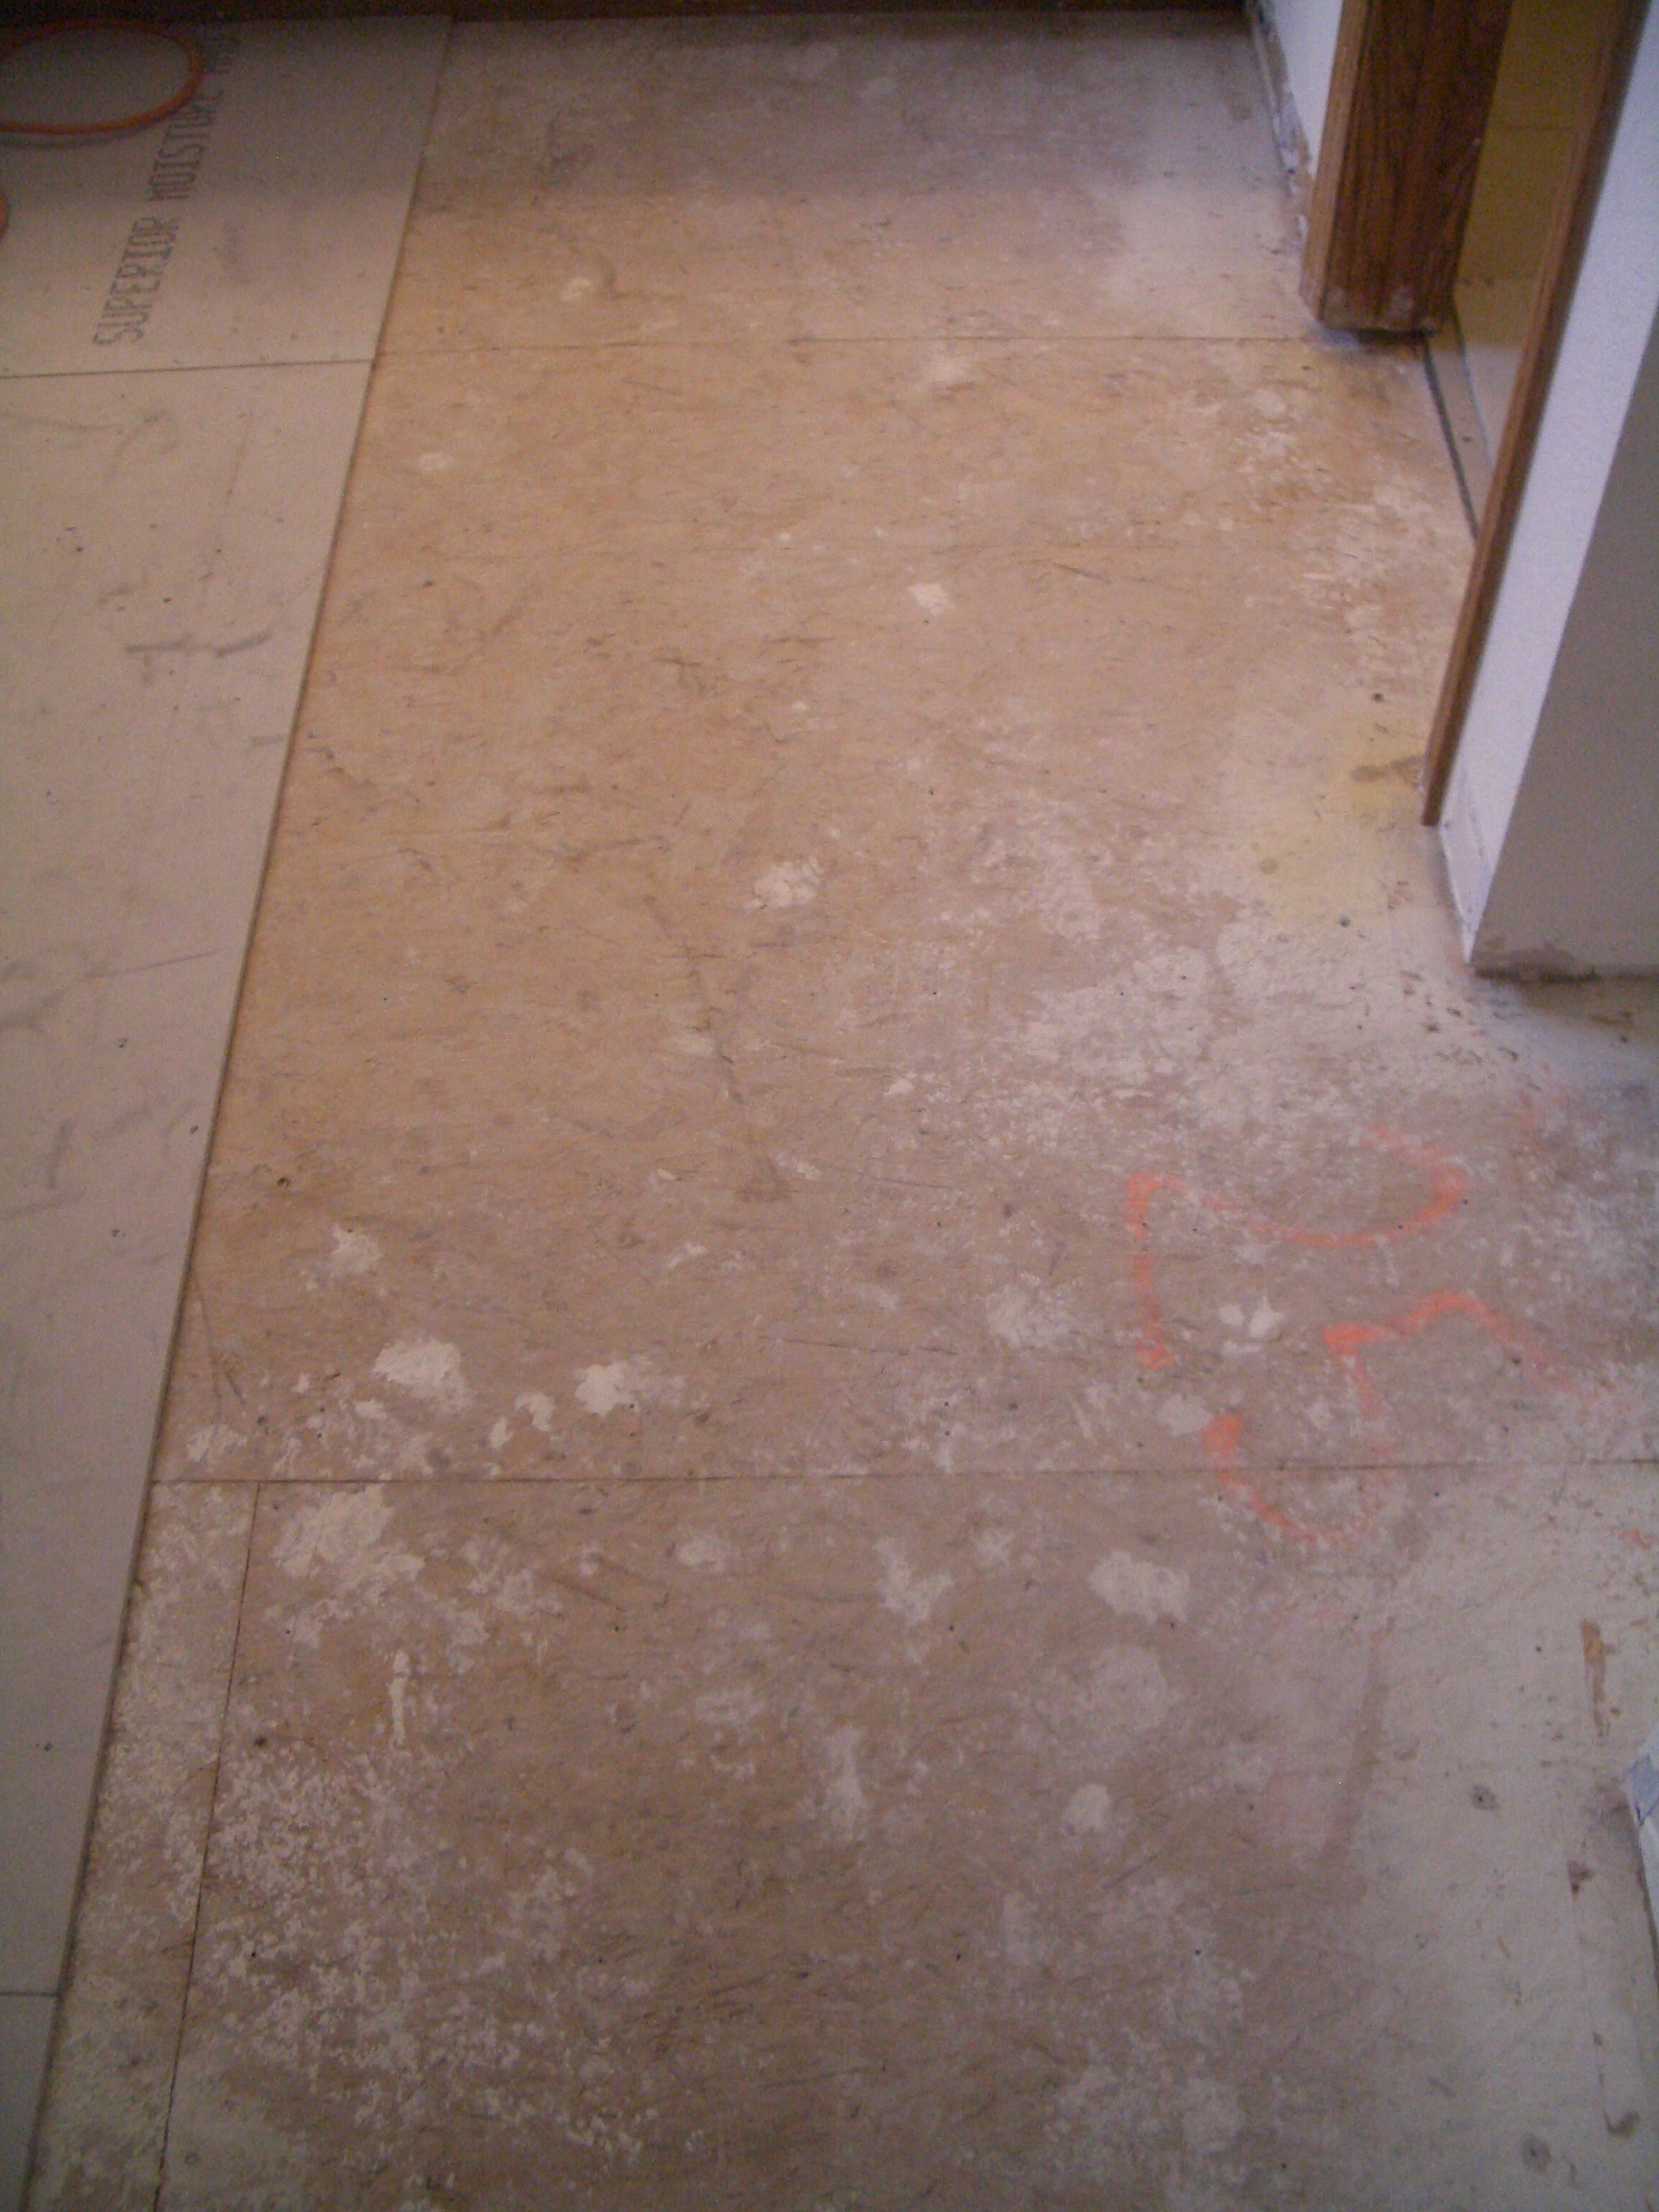 To install cement backerboard for floor tile dry fitting backerboard on floor dailygadgetfo Choice Image